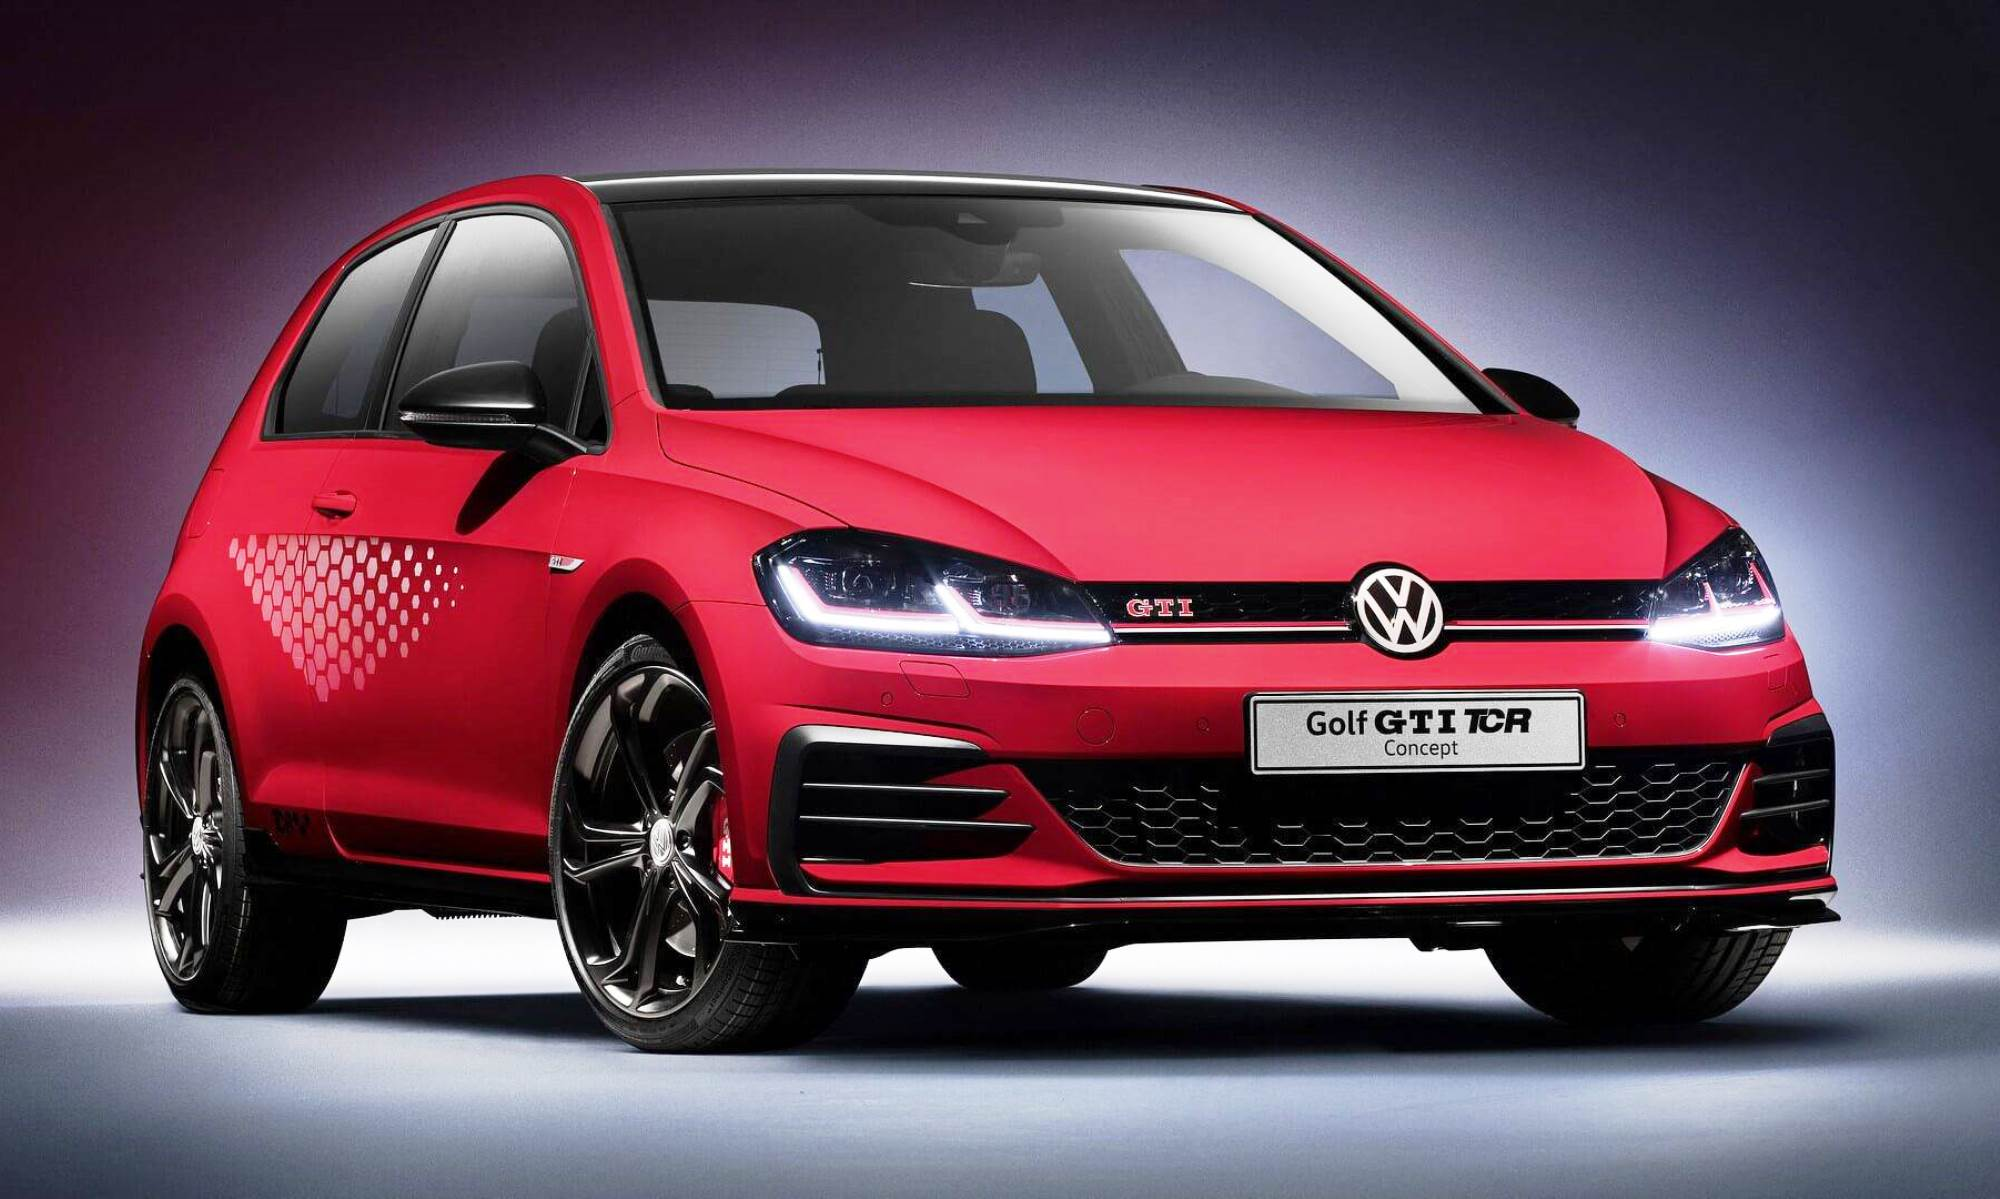 vw unveils hot new golf gti tcr at worthersee show in austria. Black Bedroom Furniture Sets. Home Design Ideas